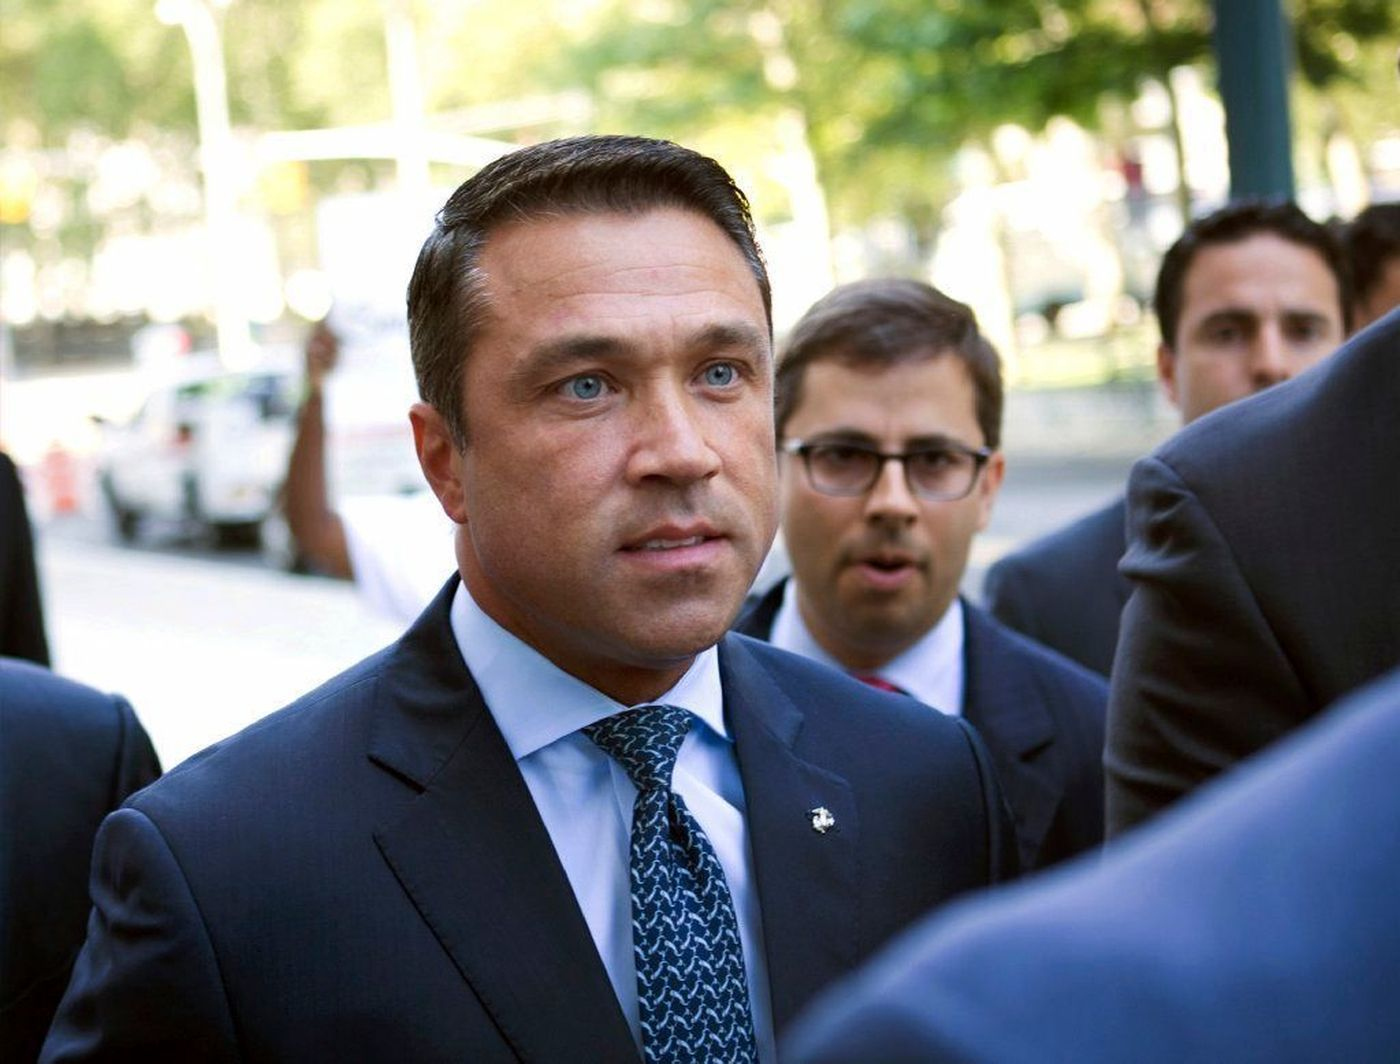 Michael Grimm Compares Crying Children Separated From Their Parents To Kids Dropped Off At Day Care Civic Engagement Primary Election Democratic States